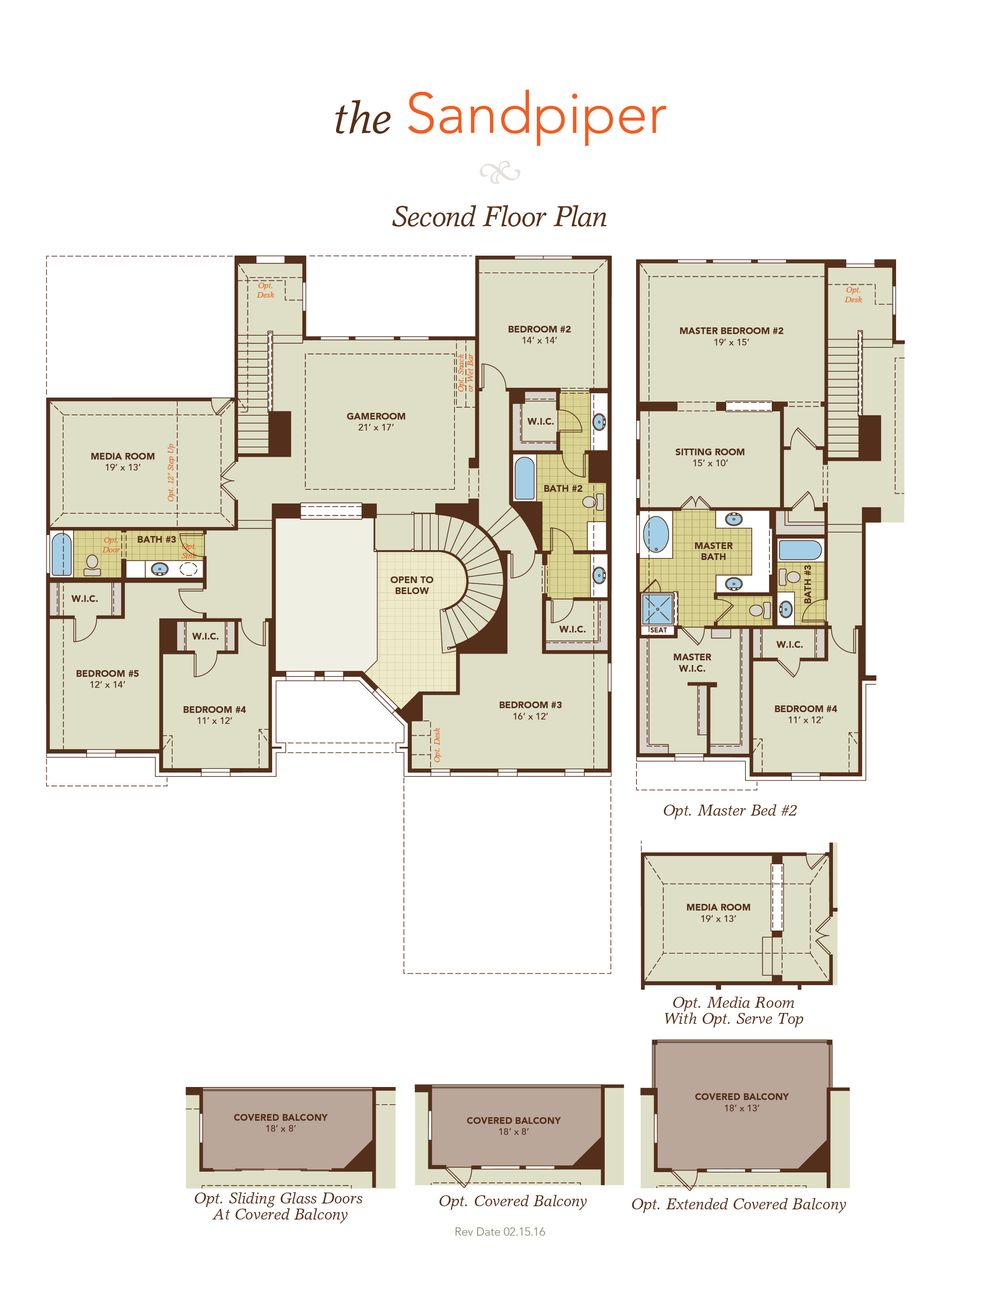 Sandpiper home plan by gehan homes in graystone hills for Floor plans for homes in texas